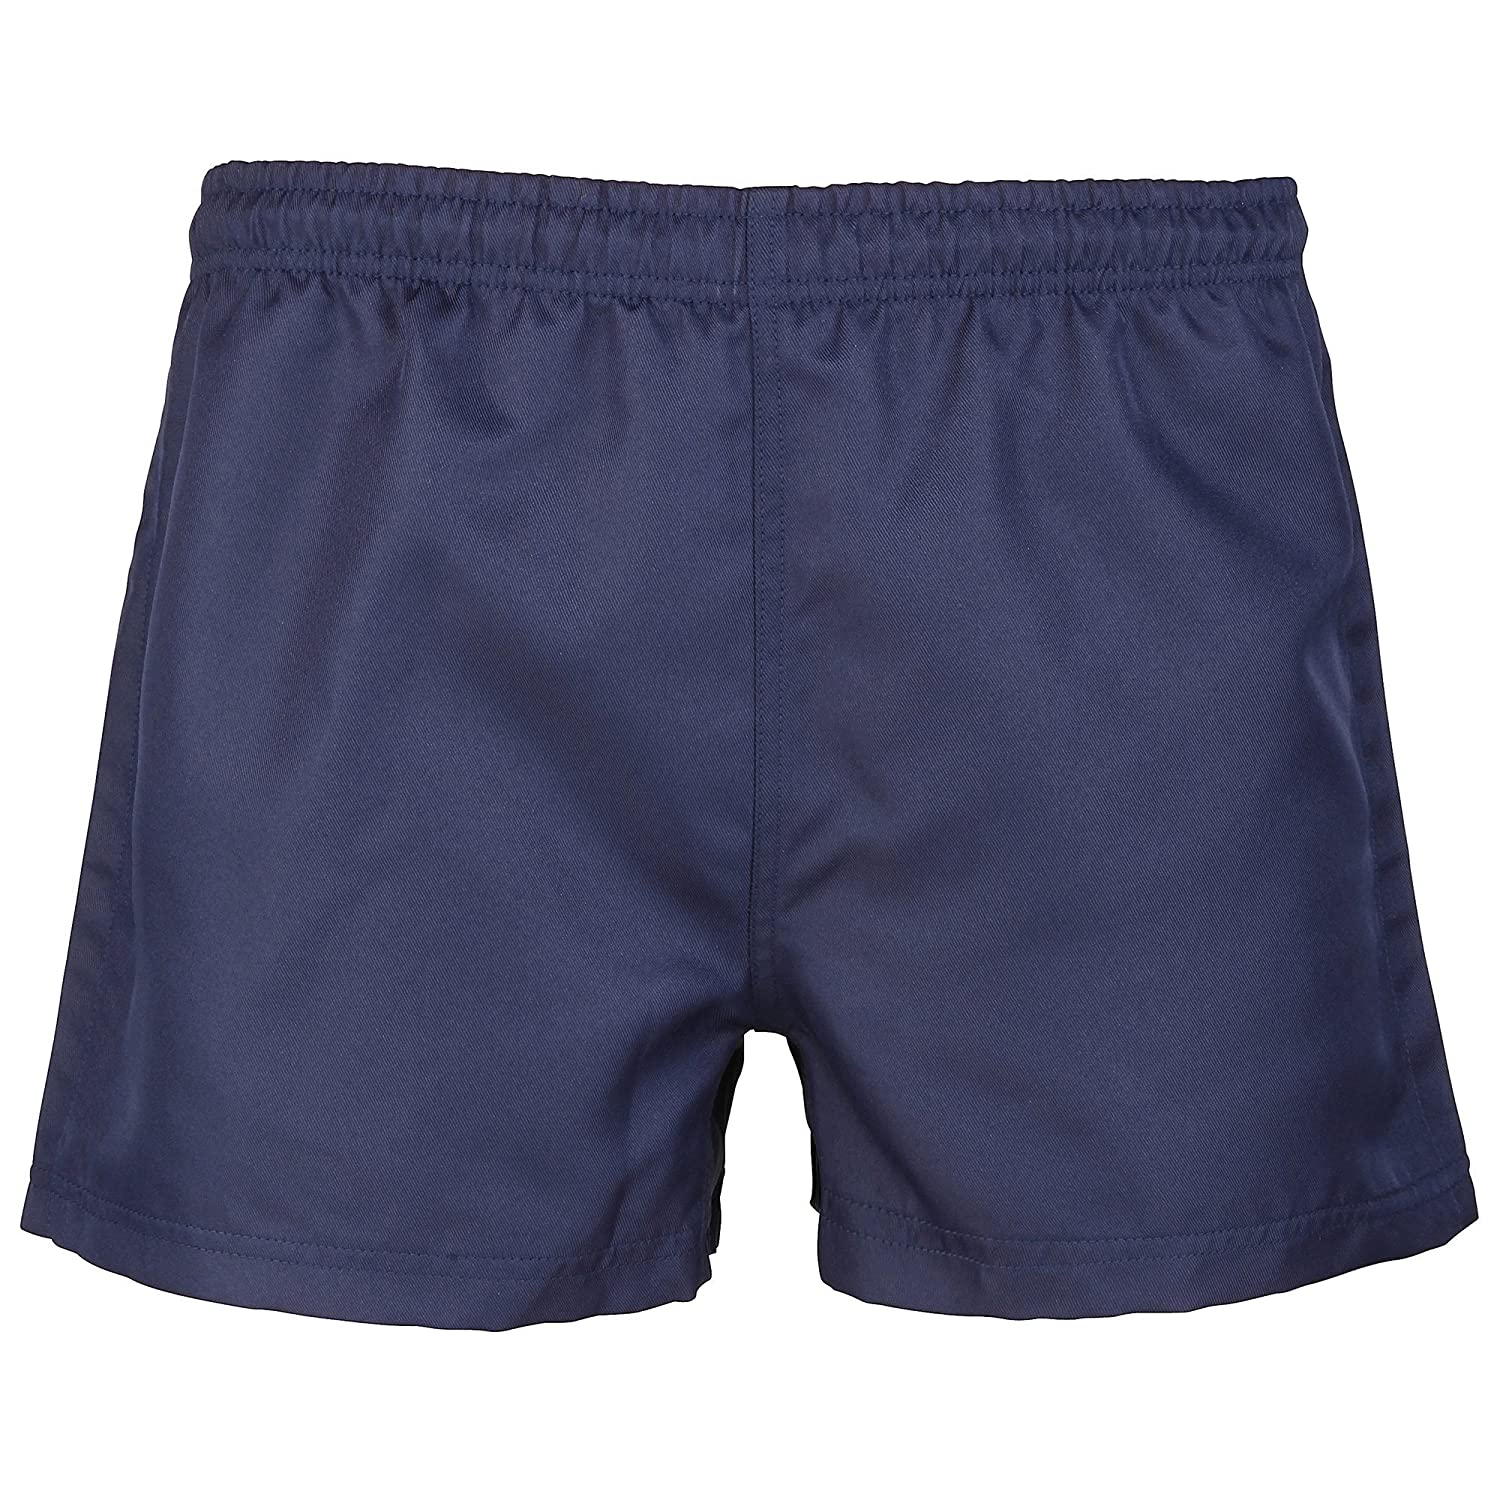 Rhino Mens Club Shorts - Navy Blau